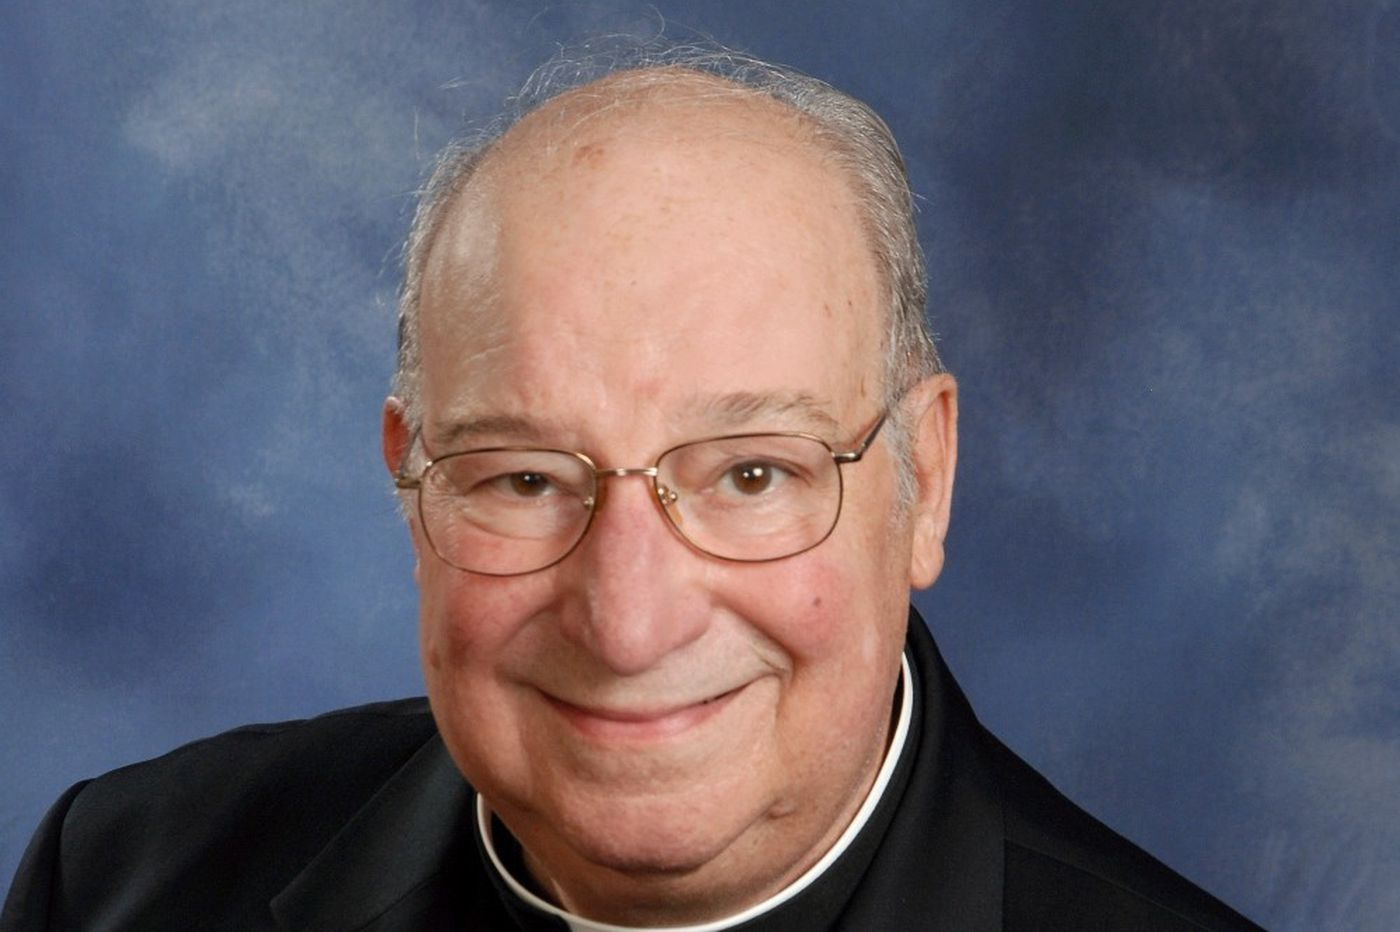 Rev. John J. Farry, Catholic priest known for his kindness and sense of humor, dies at 79